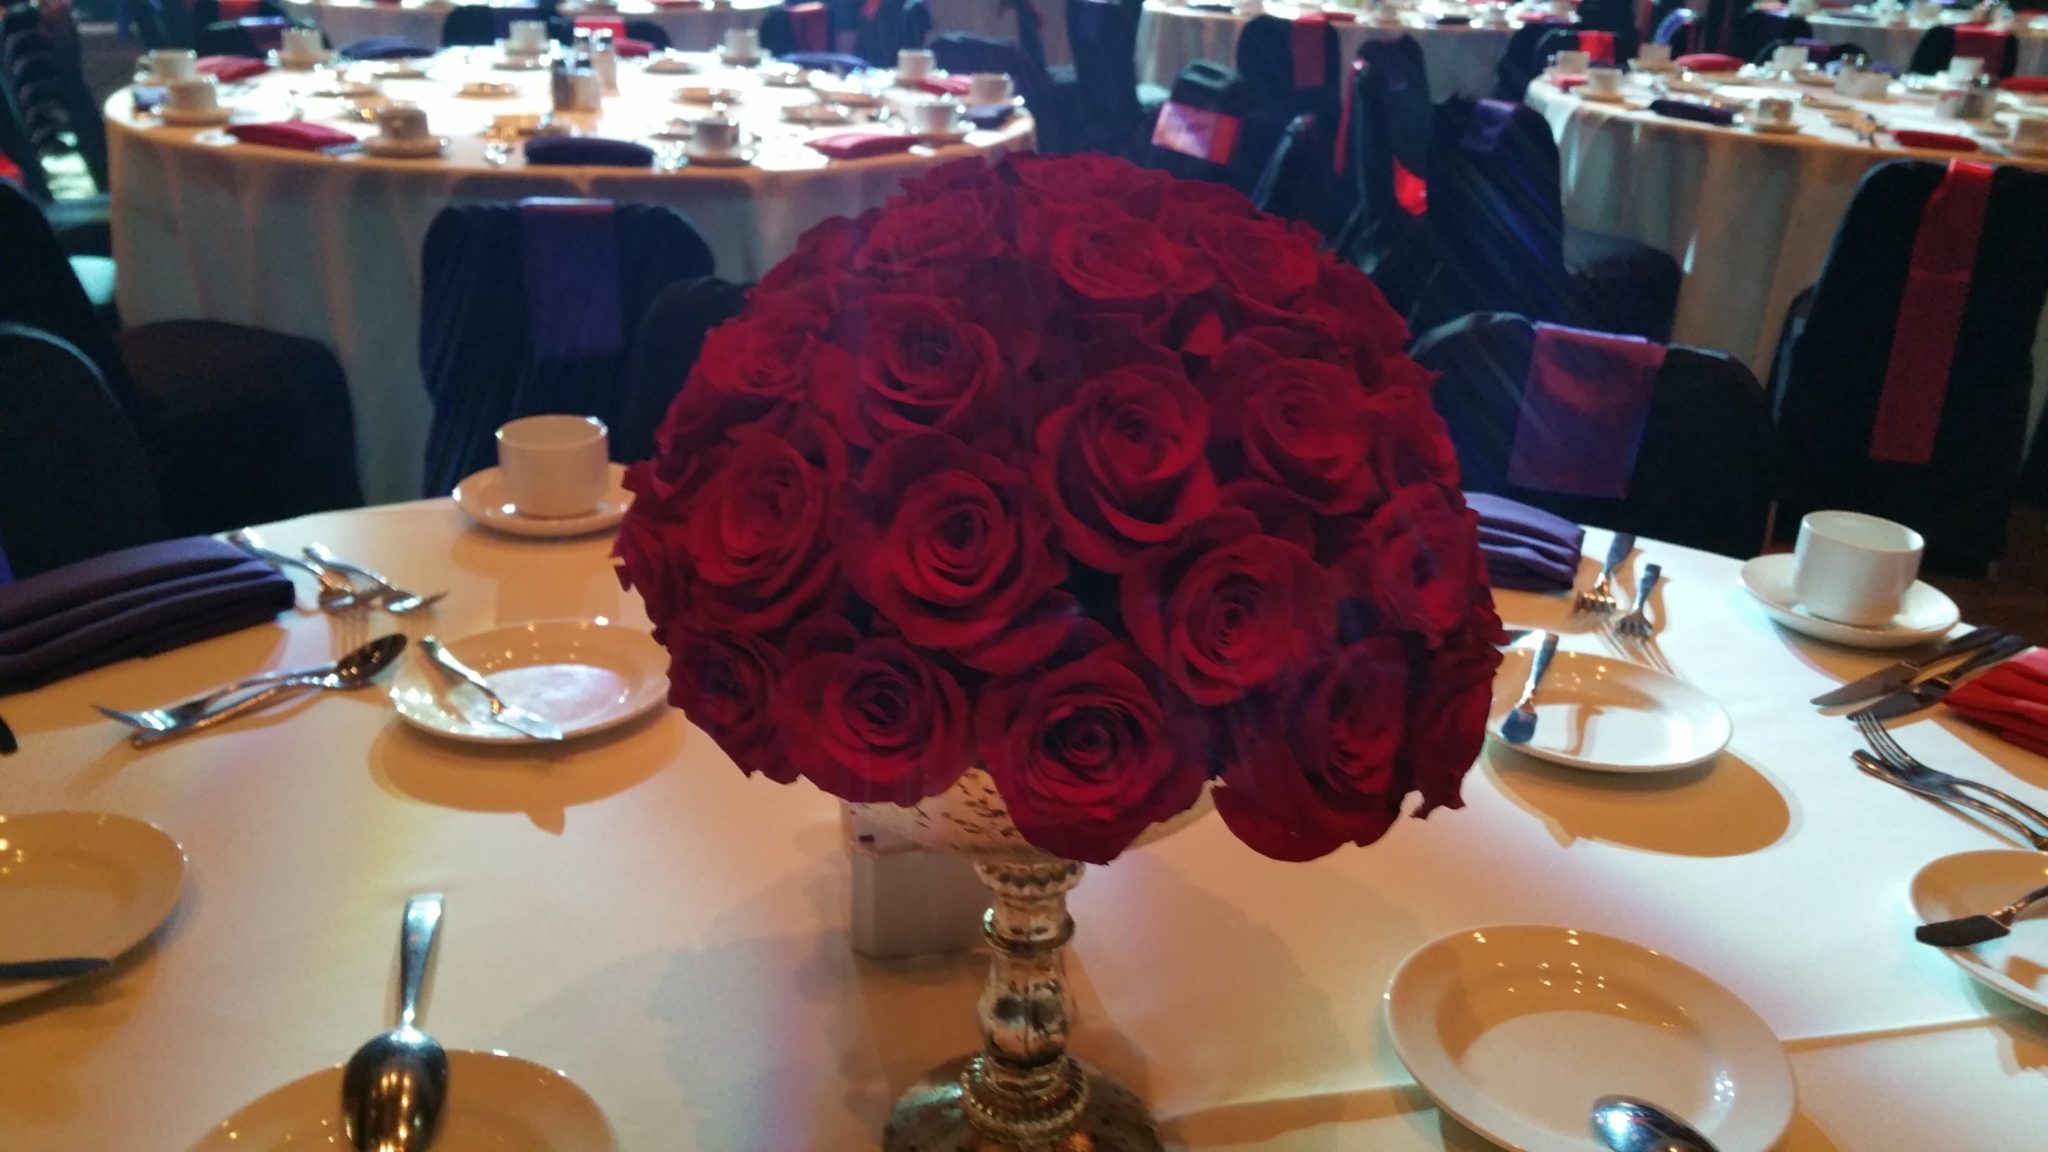 Wedding centerpiece with red roses